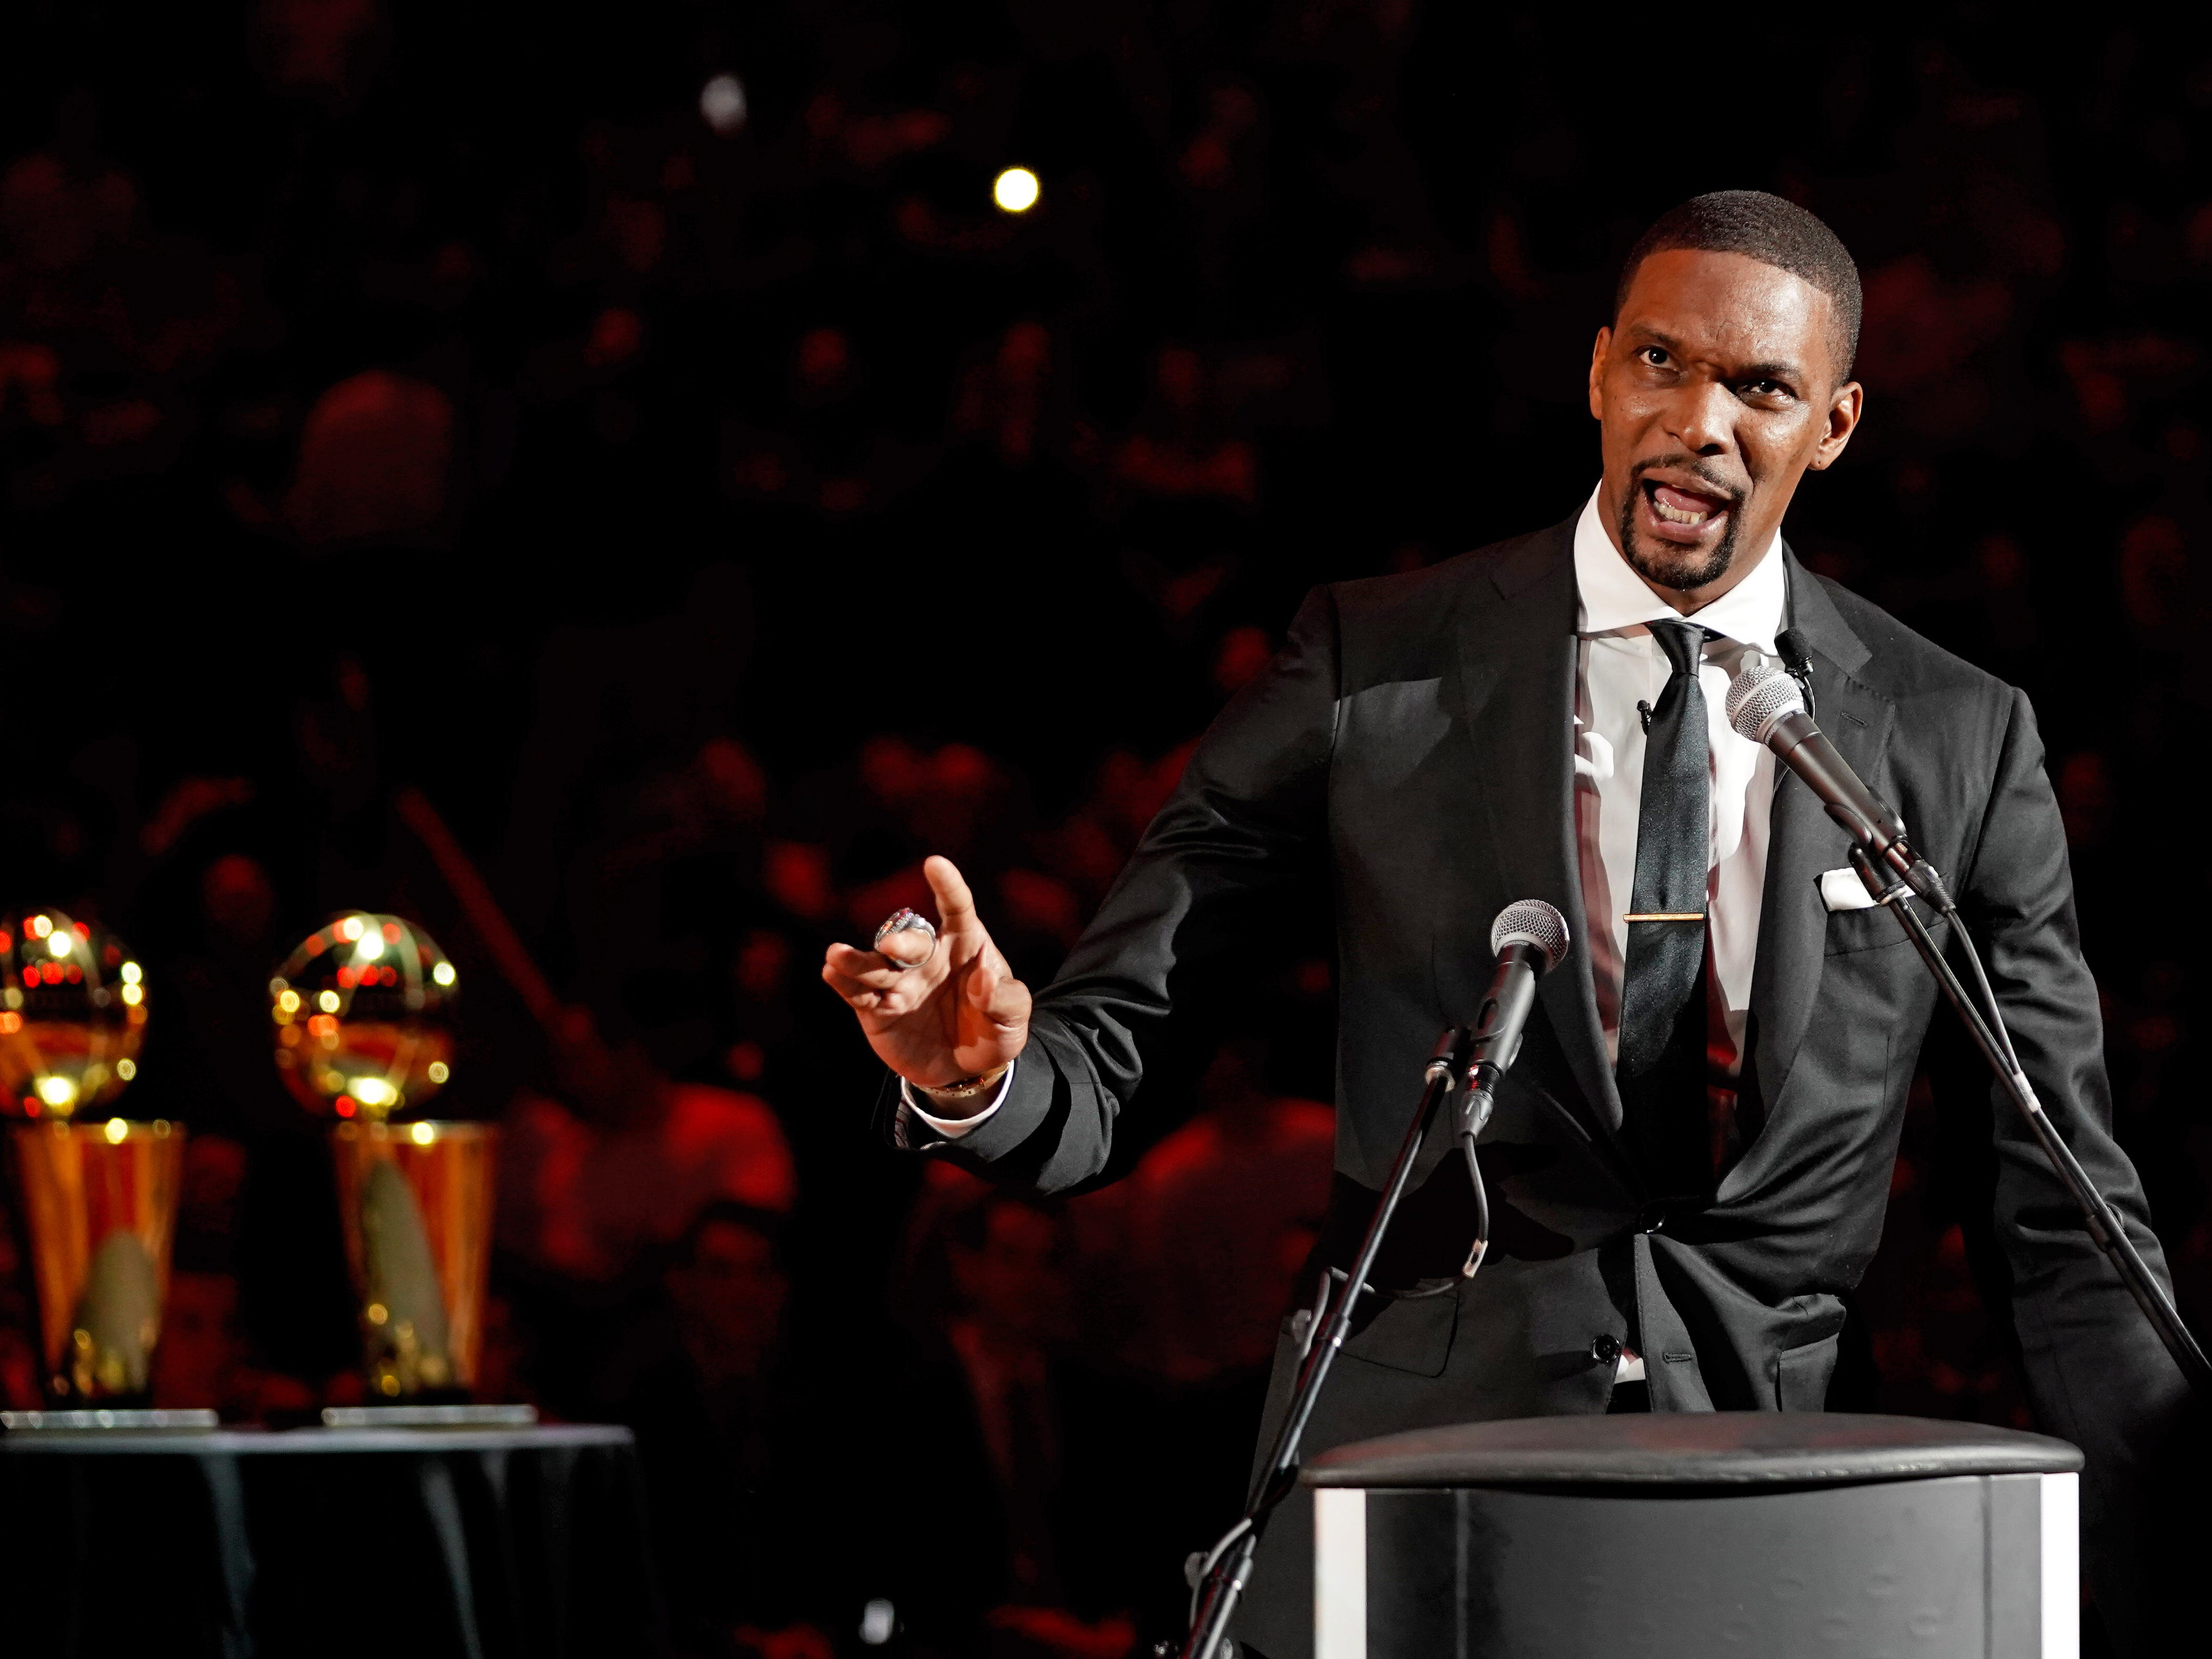 March 26, 2019: Former Miami Heat player Chris Bosh speaks during his jersey retirement ceremony at halftime of the game between the Heat and Orlando Magic at American Airlines Arena.